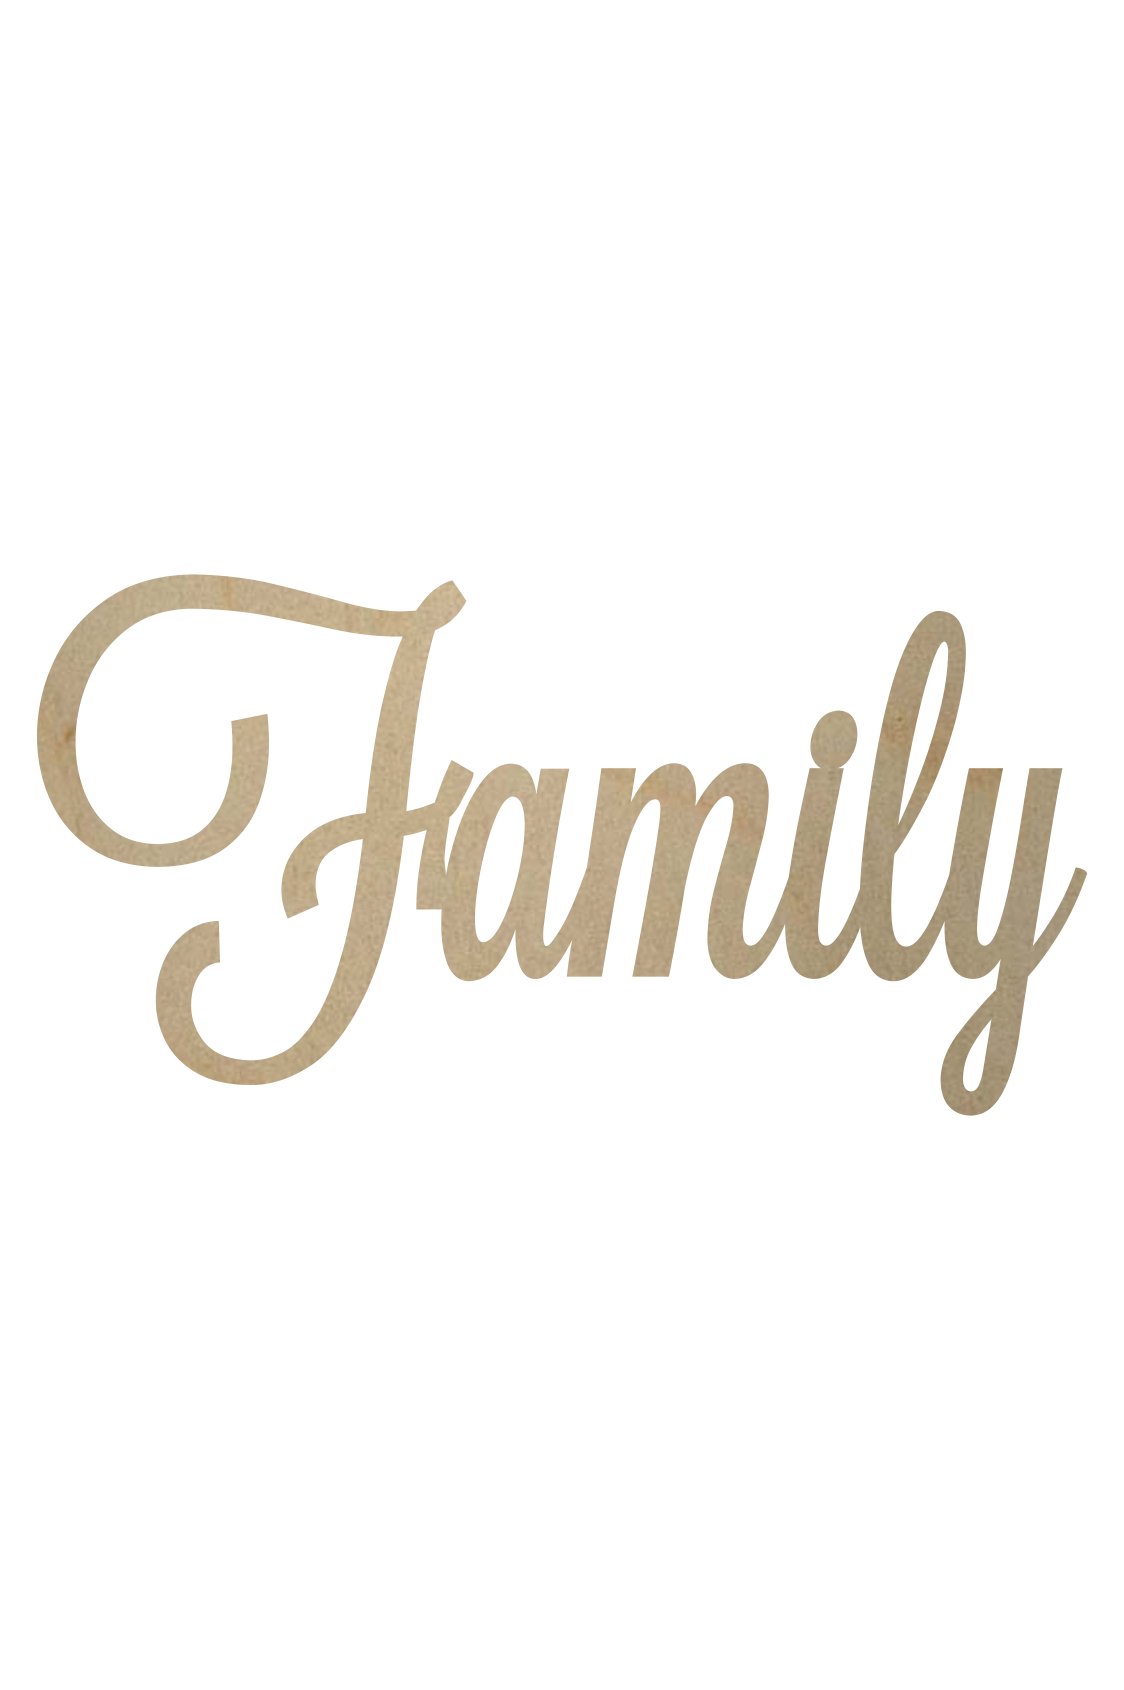 Family word png. Wooden cutout woodencutouts com